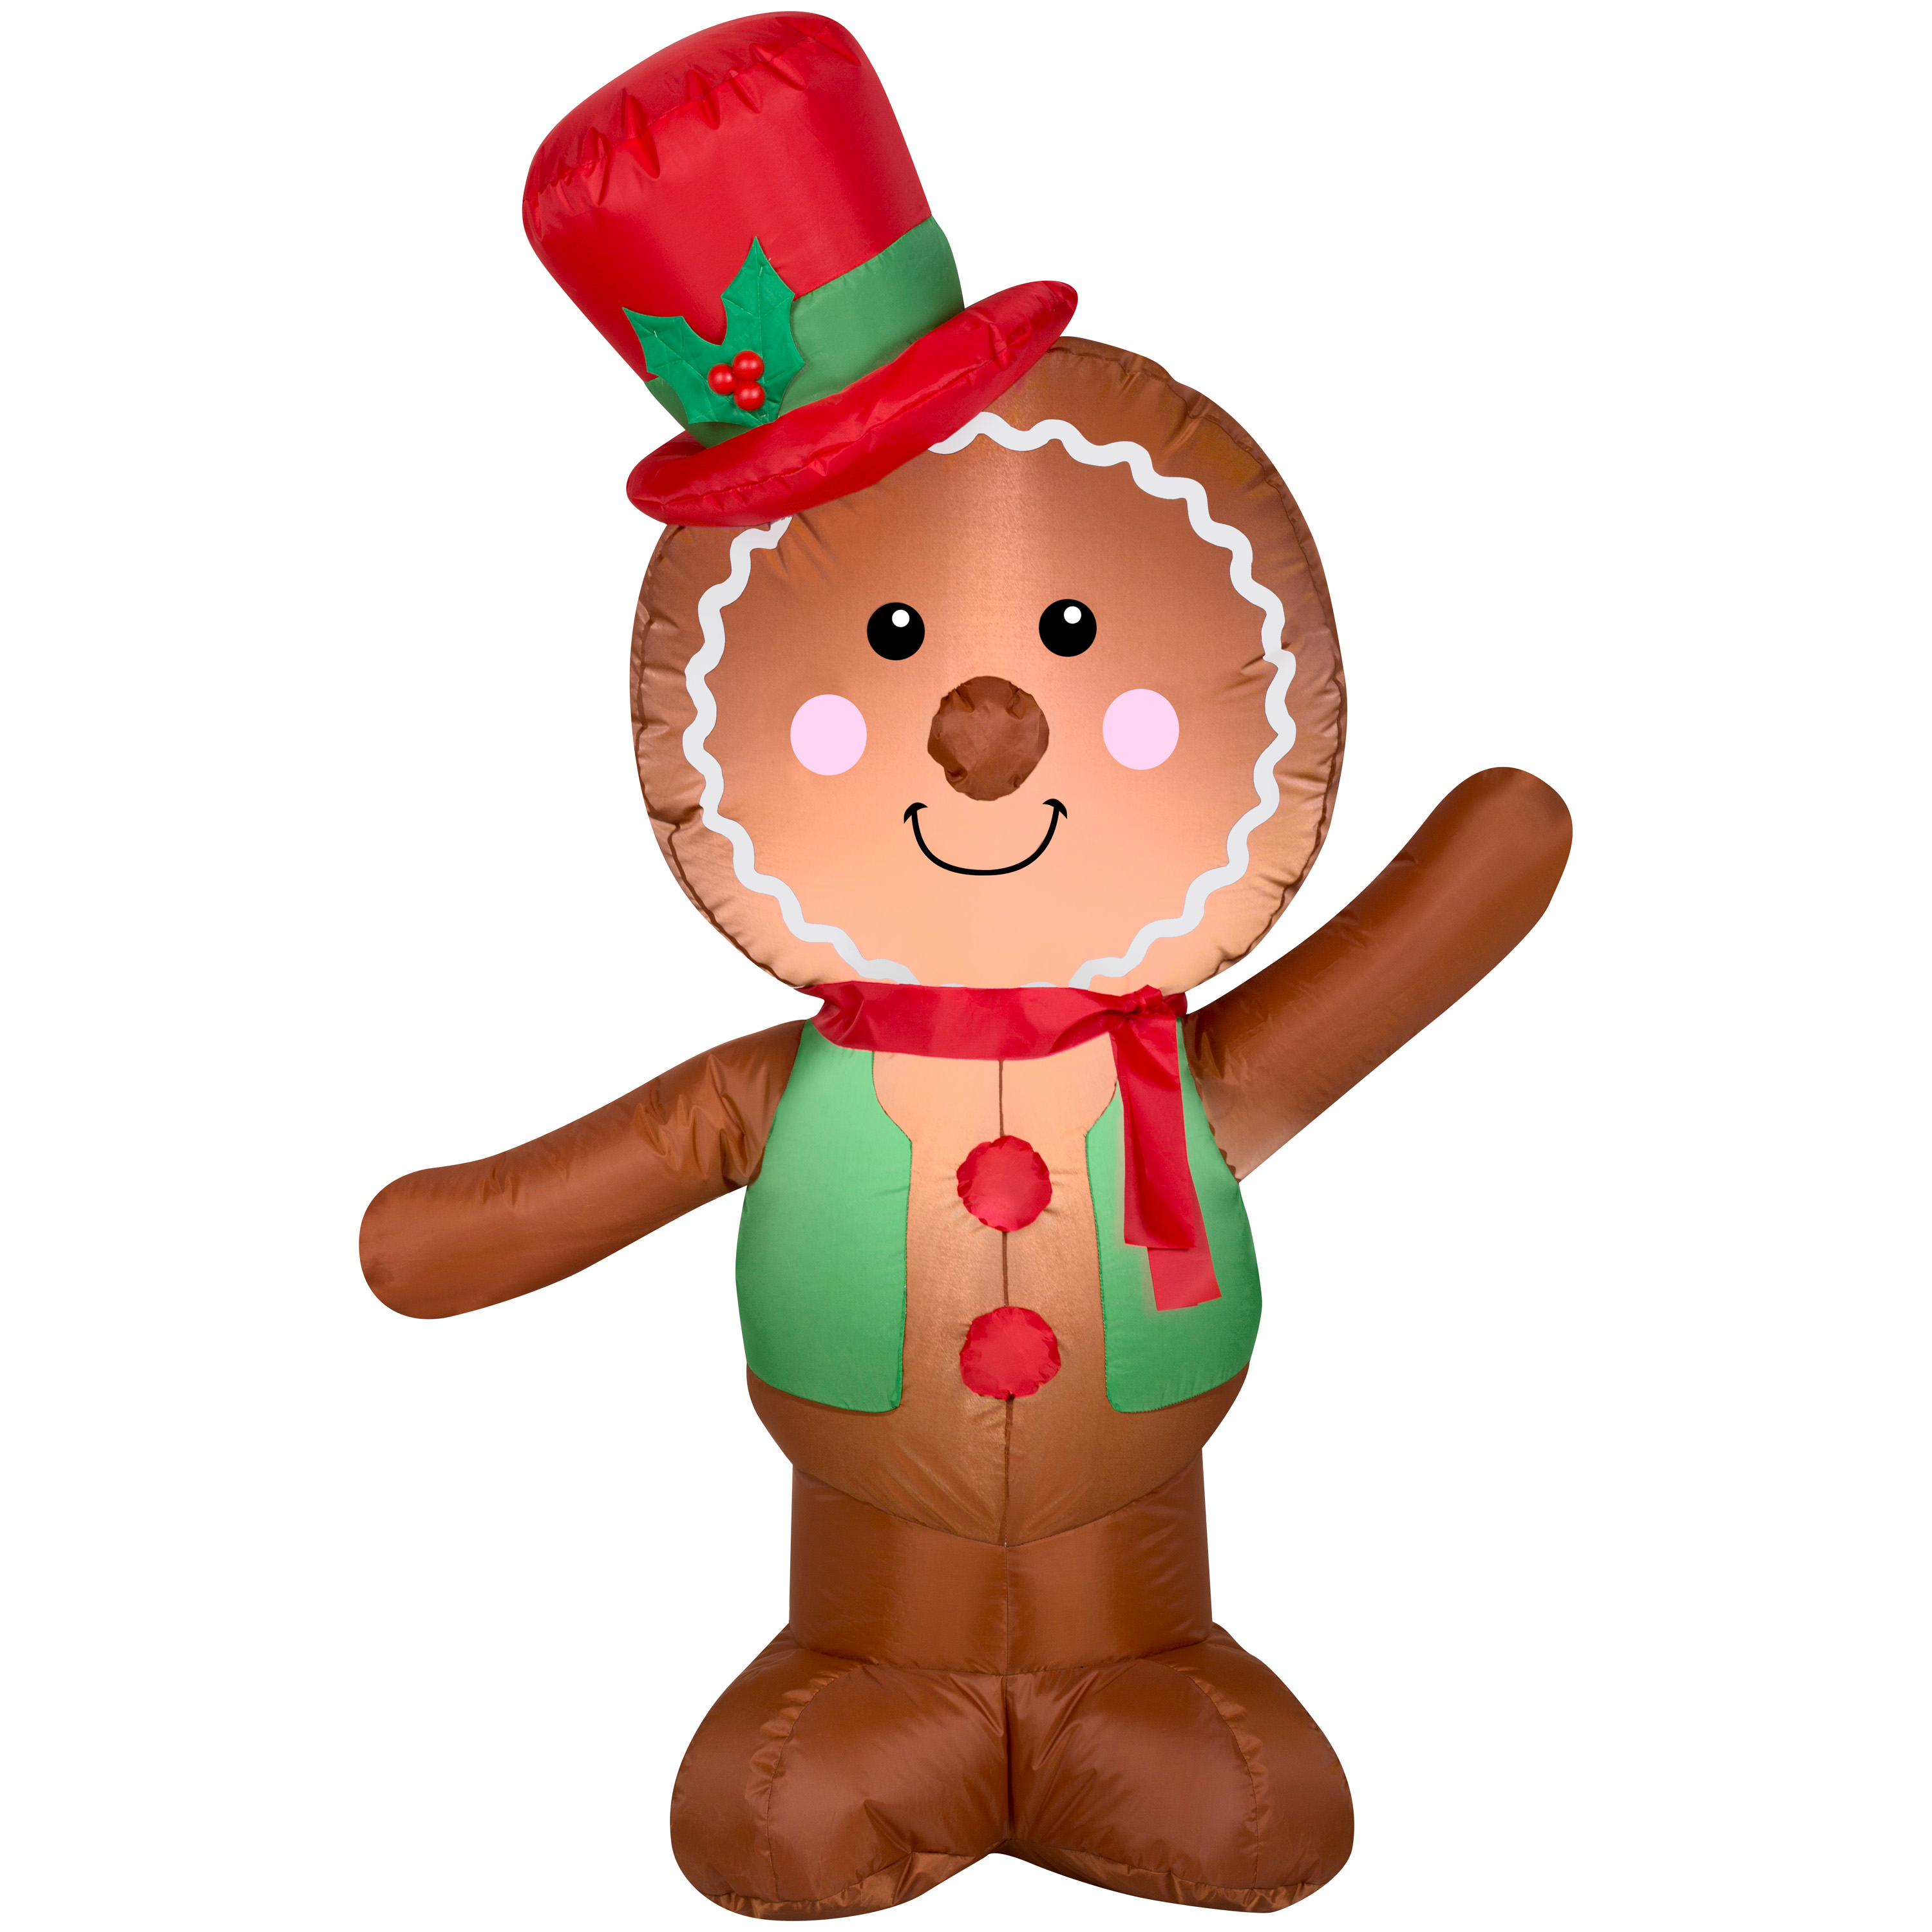 Christmas Airblown 4' Gingerbread Man Inflatable